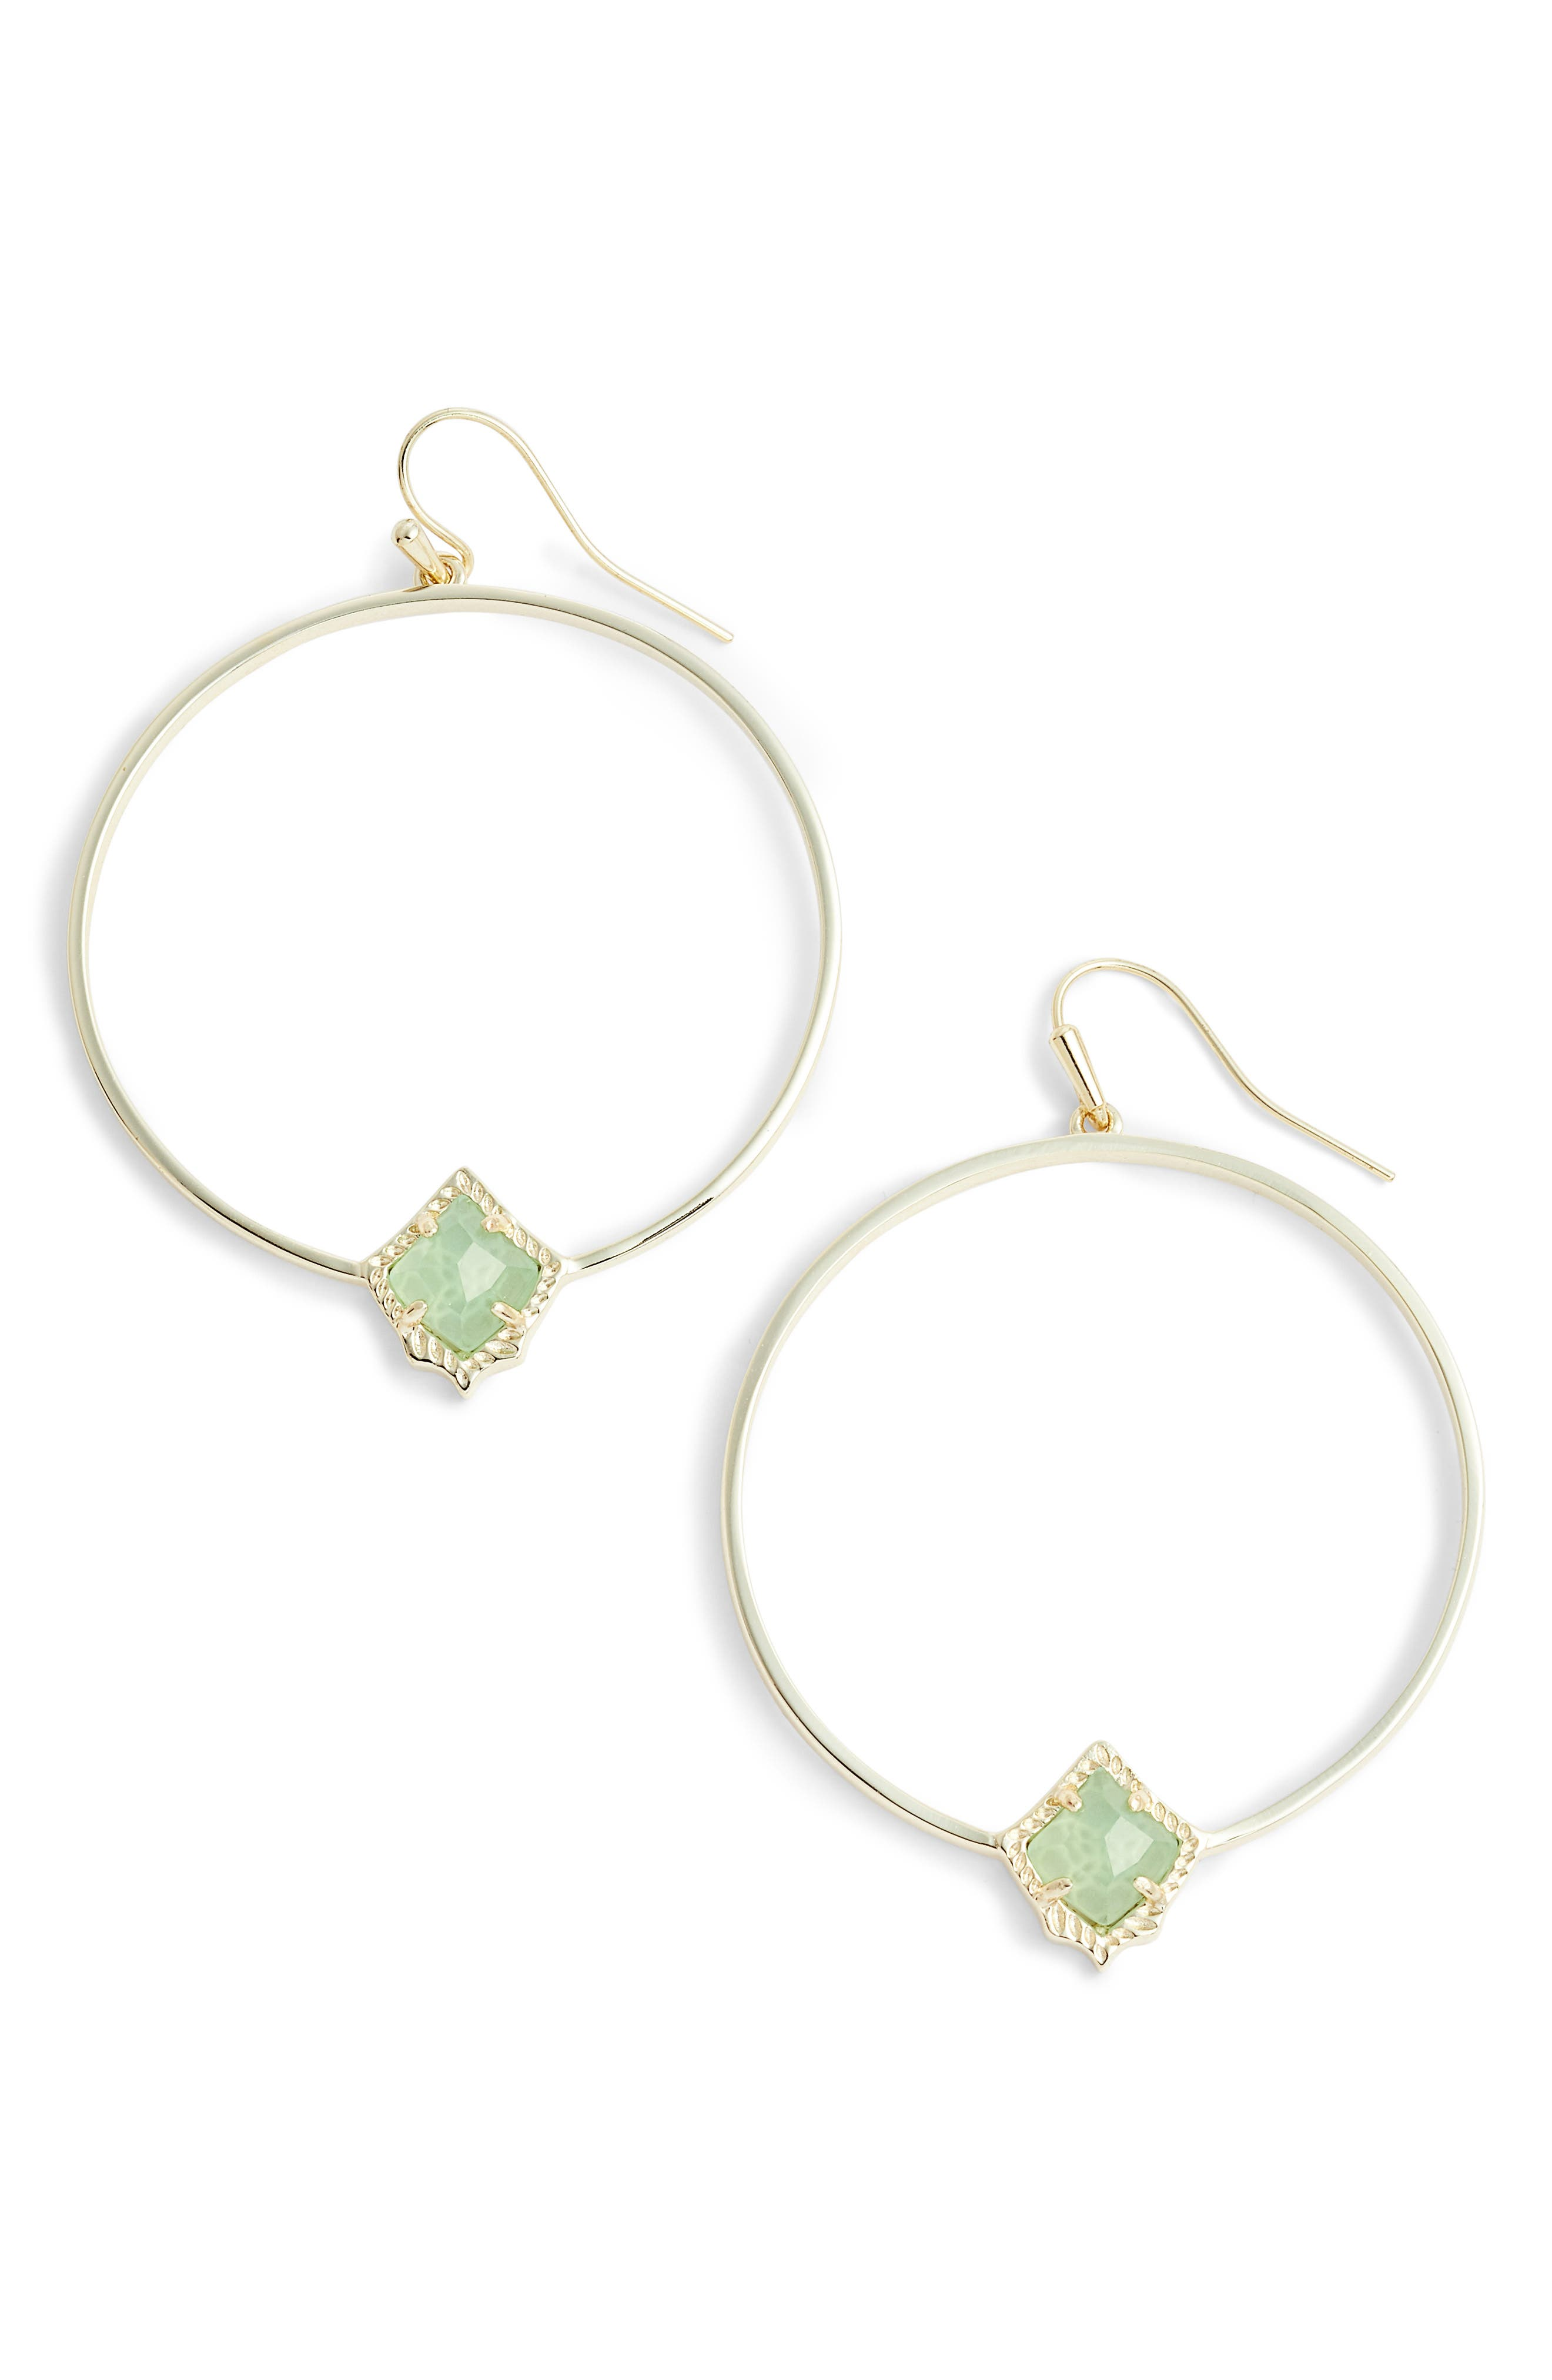 ELBERTA HOOP EARRINGS